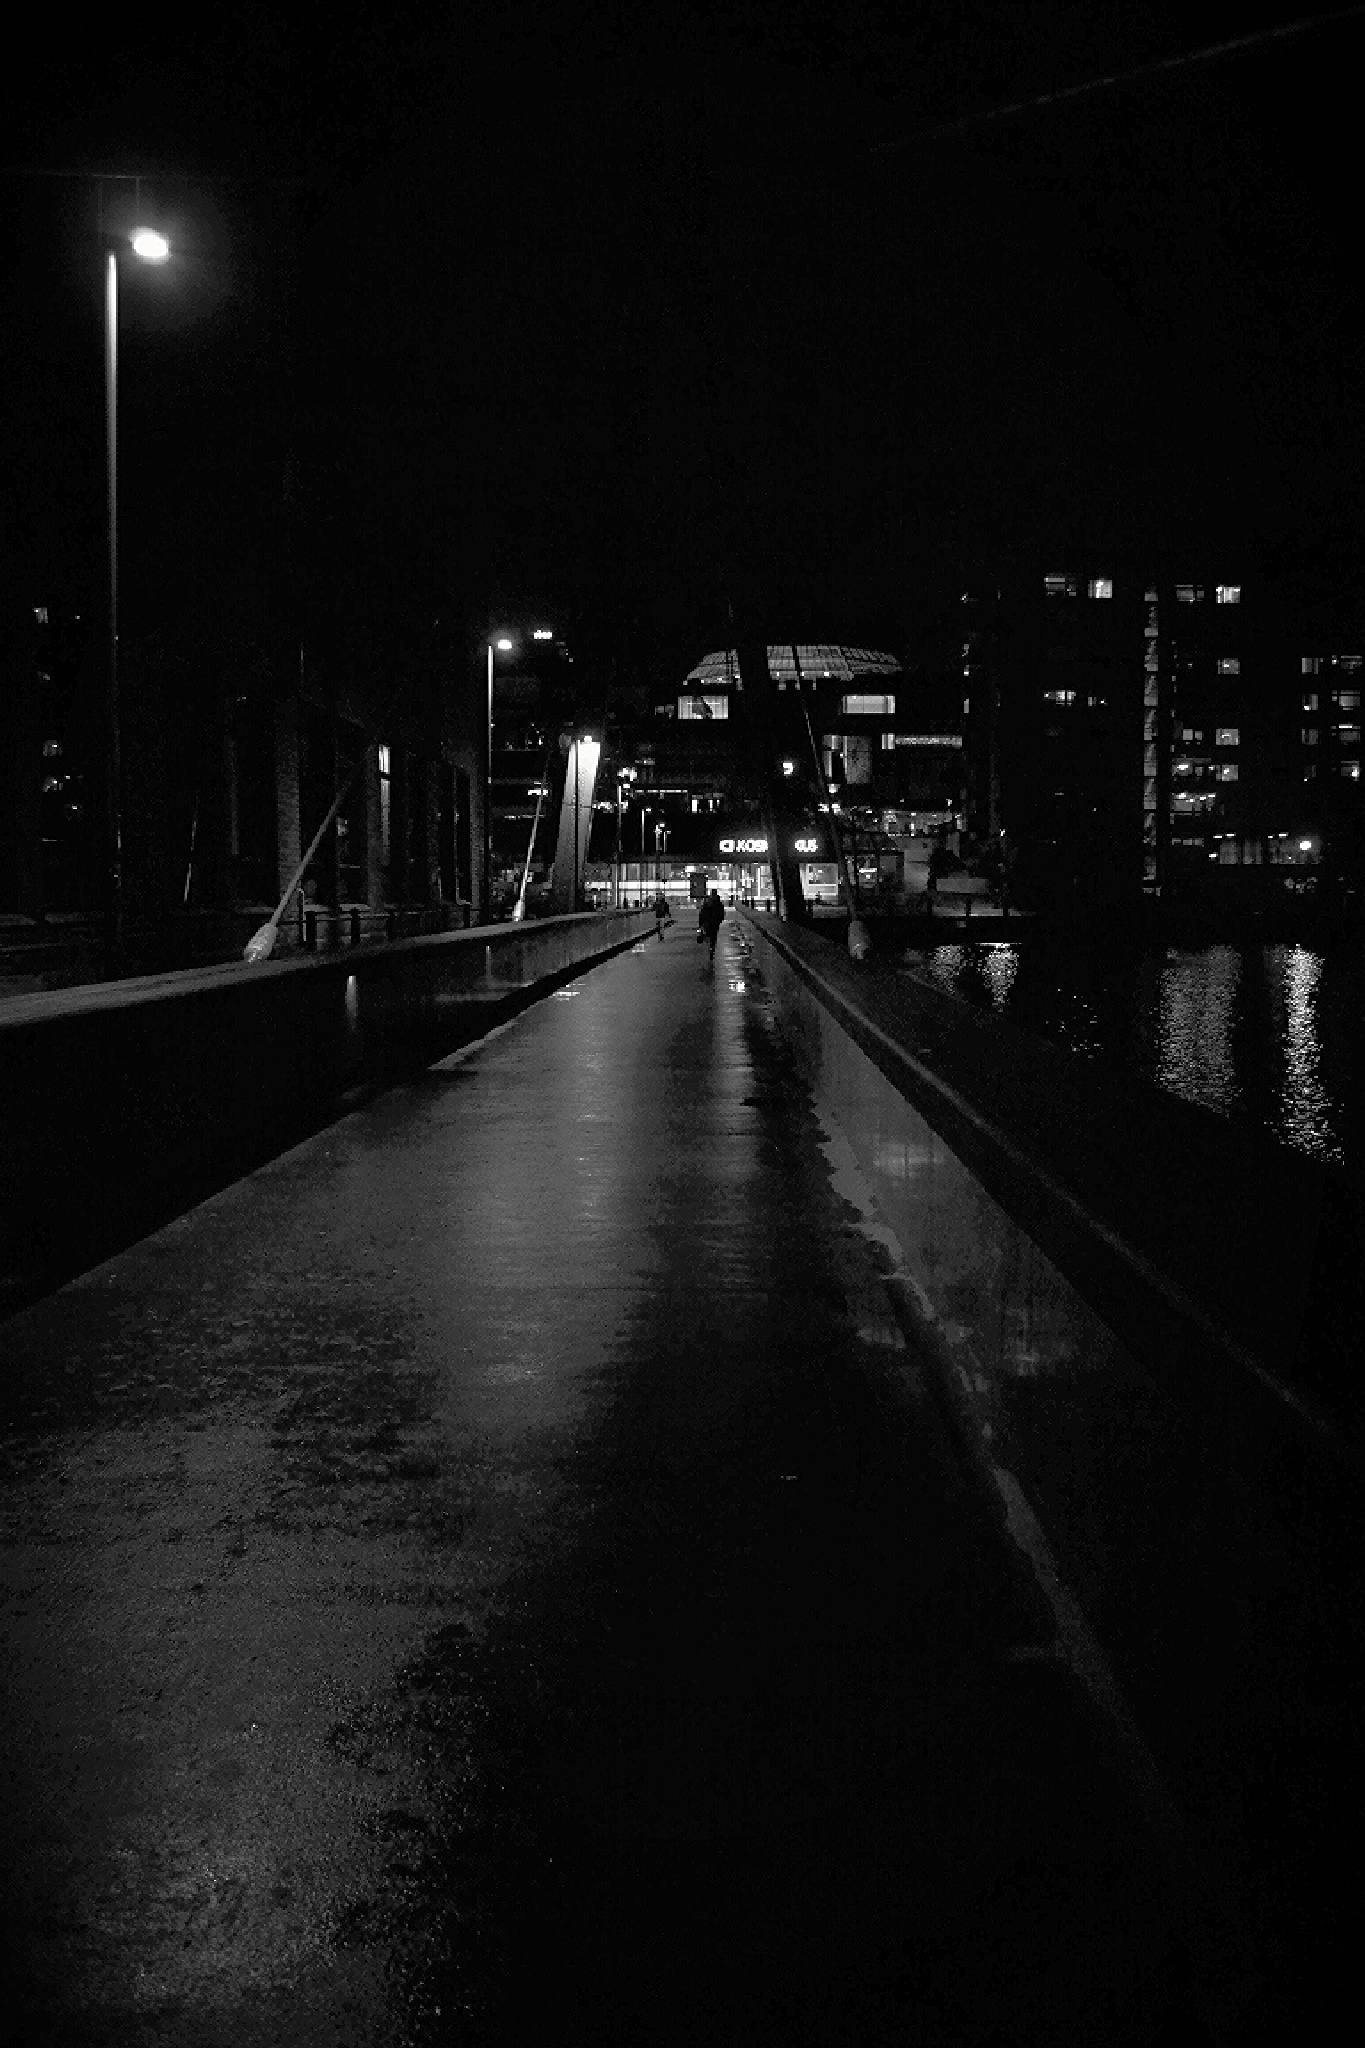 Night  in Tampere by Timo V